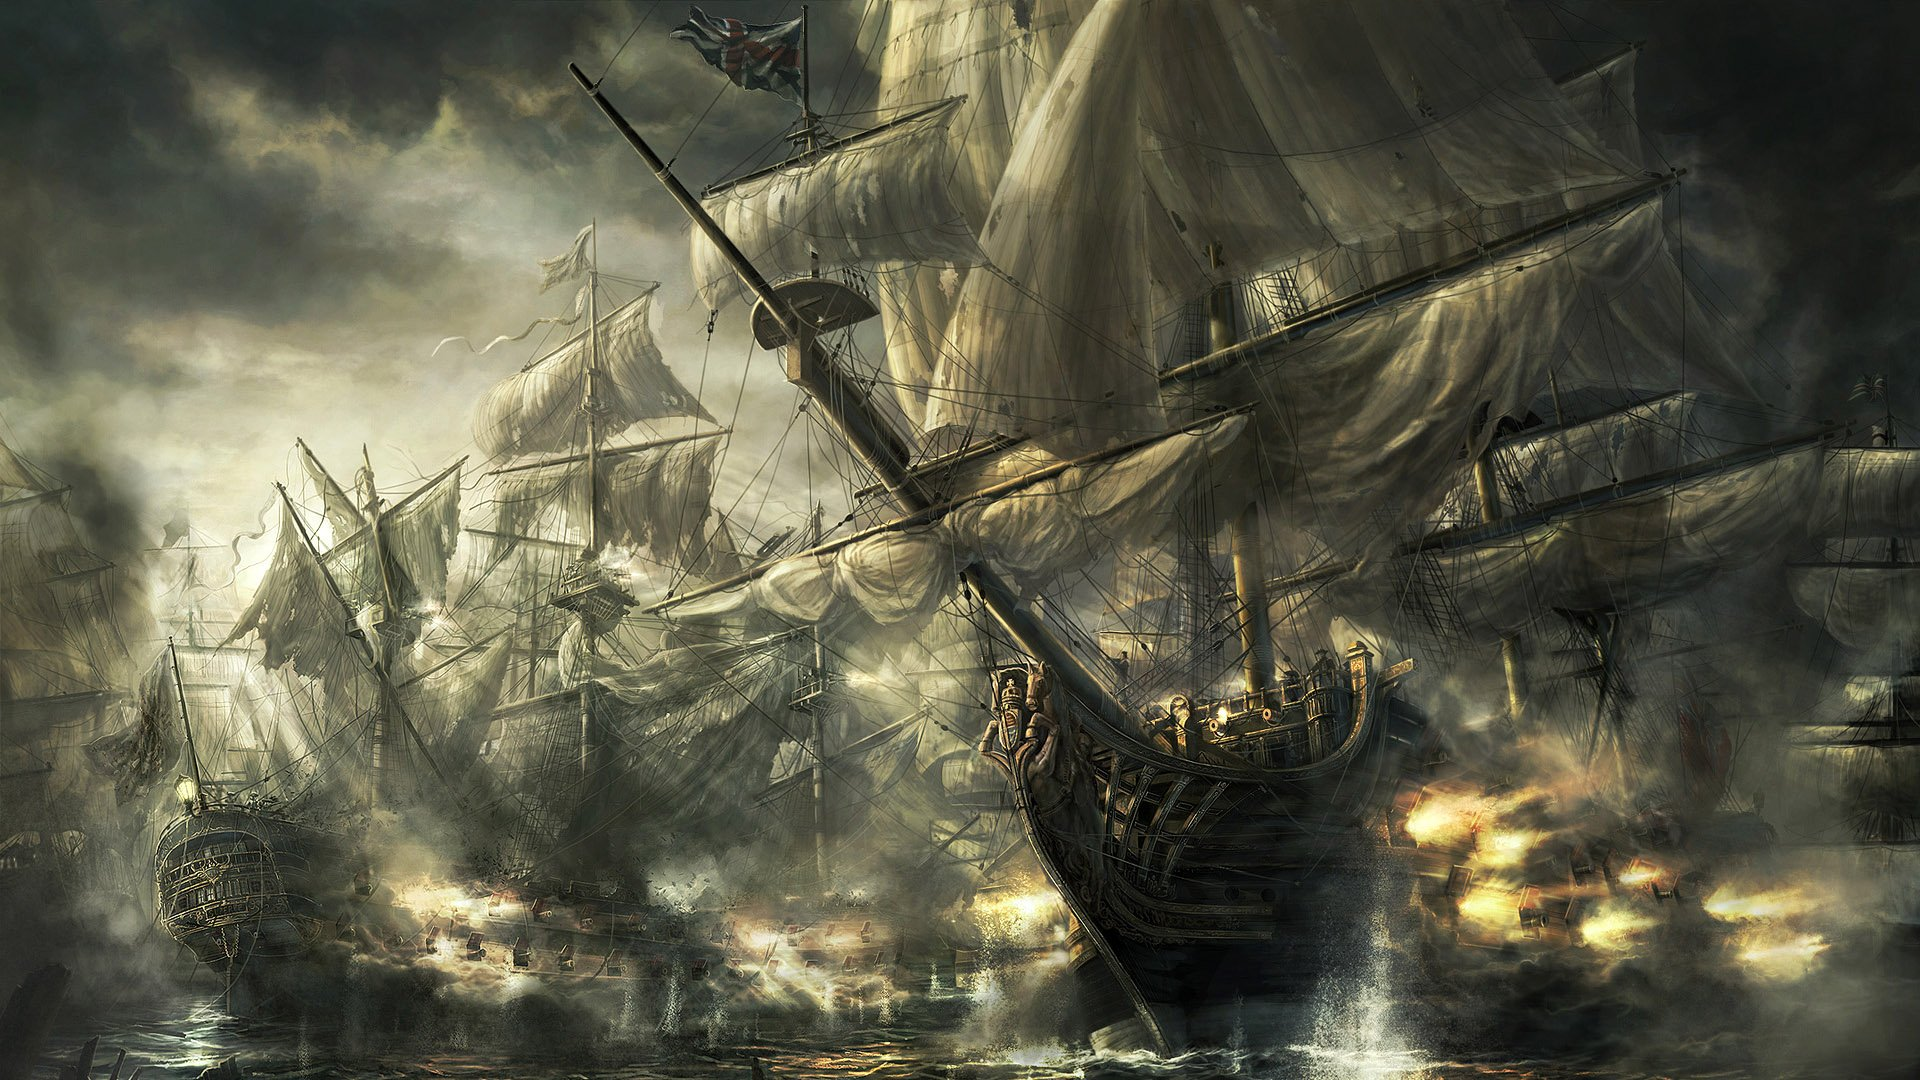 war background ship image ps3 wallpapers massive 1920x1080